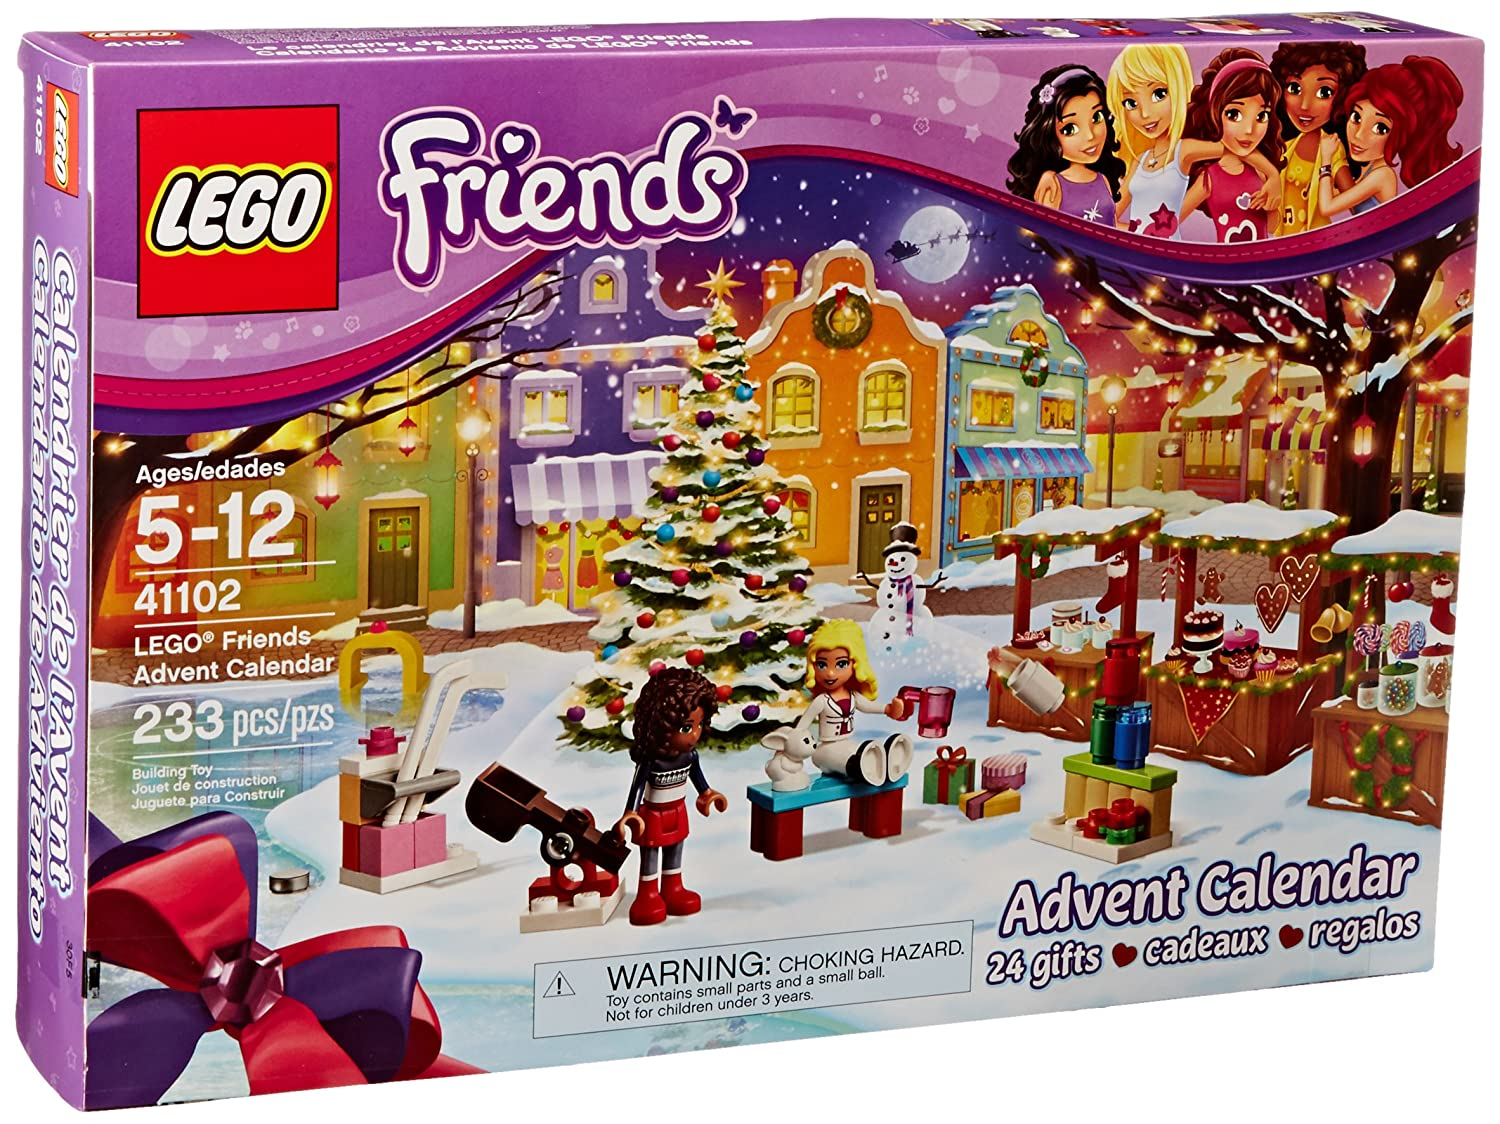 LEGO Friends 41102 Advent Calendar Building Kit (Discontinued by manufacturer) by LEGO 6099698